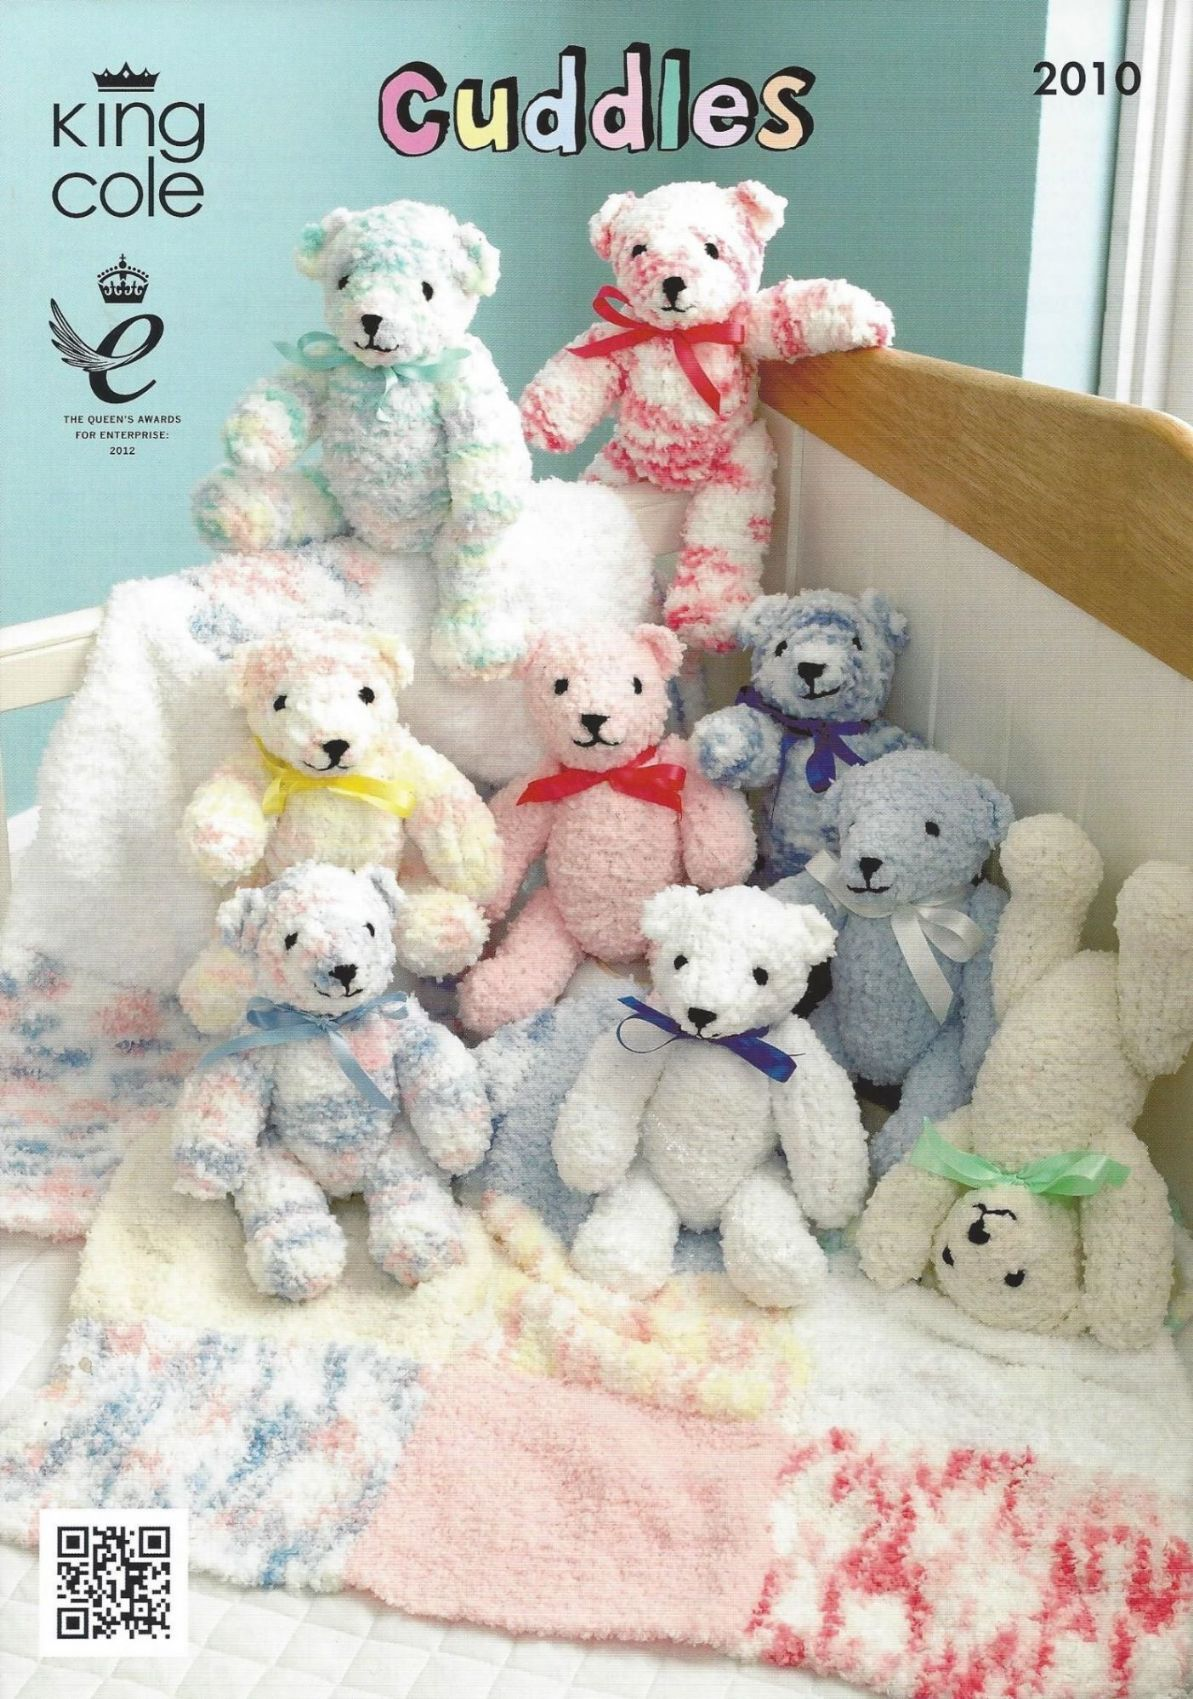 King Cole - 2010 Teddy Bear and Blanket Knitting Pattern